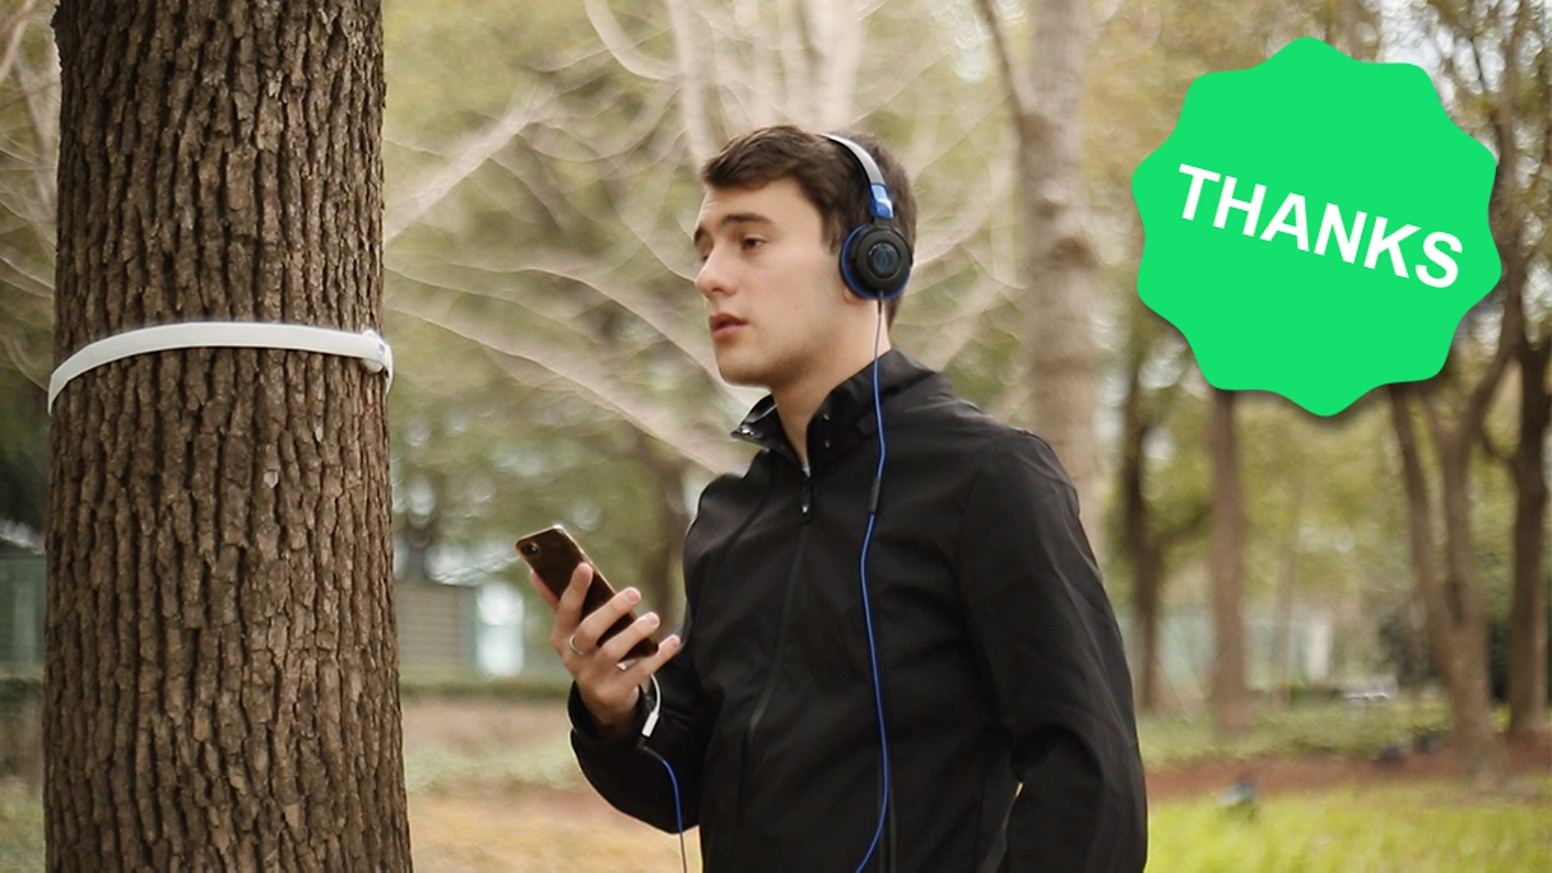 A smart, connected wireless stethoscope that lets you hear the hidden sounds of life and feel the pulse of the earth.